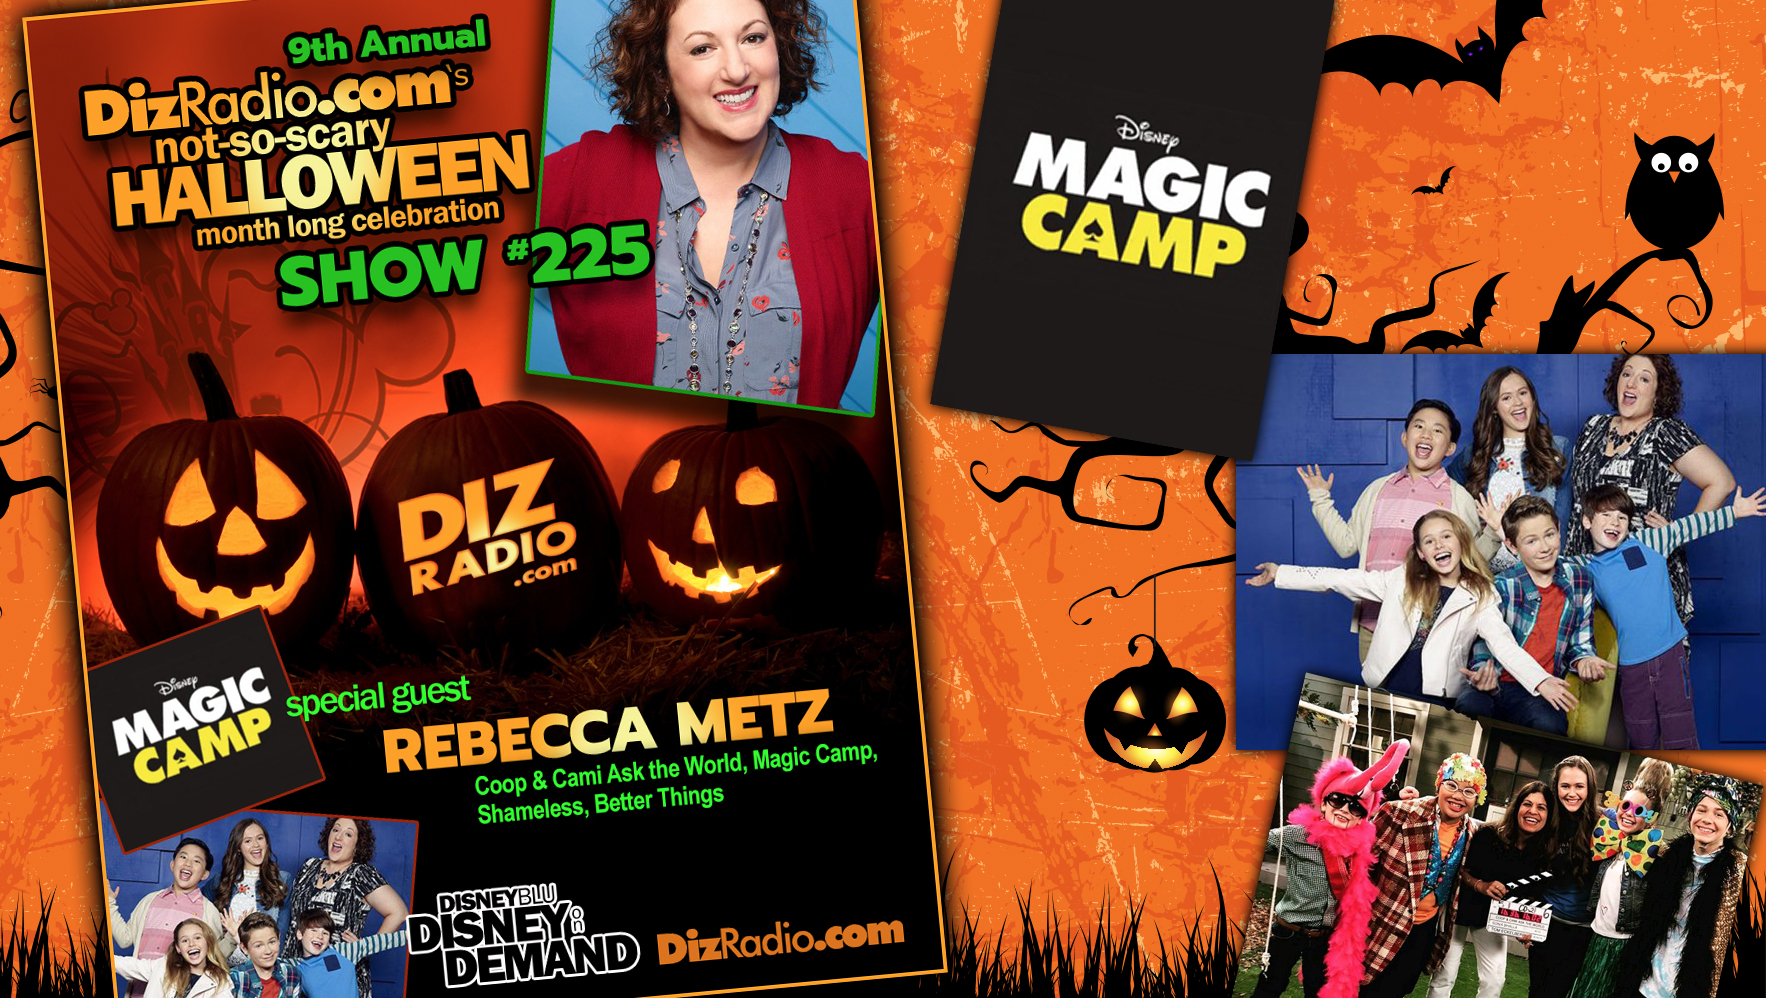 DisneyBlu's DizRadio Disney on Demand Show #225 w/ Guest REBECCA METZ (Coop & Cami Ask the World, Magic Camp on Disney Plus, Better Things, Shameless)